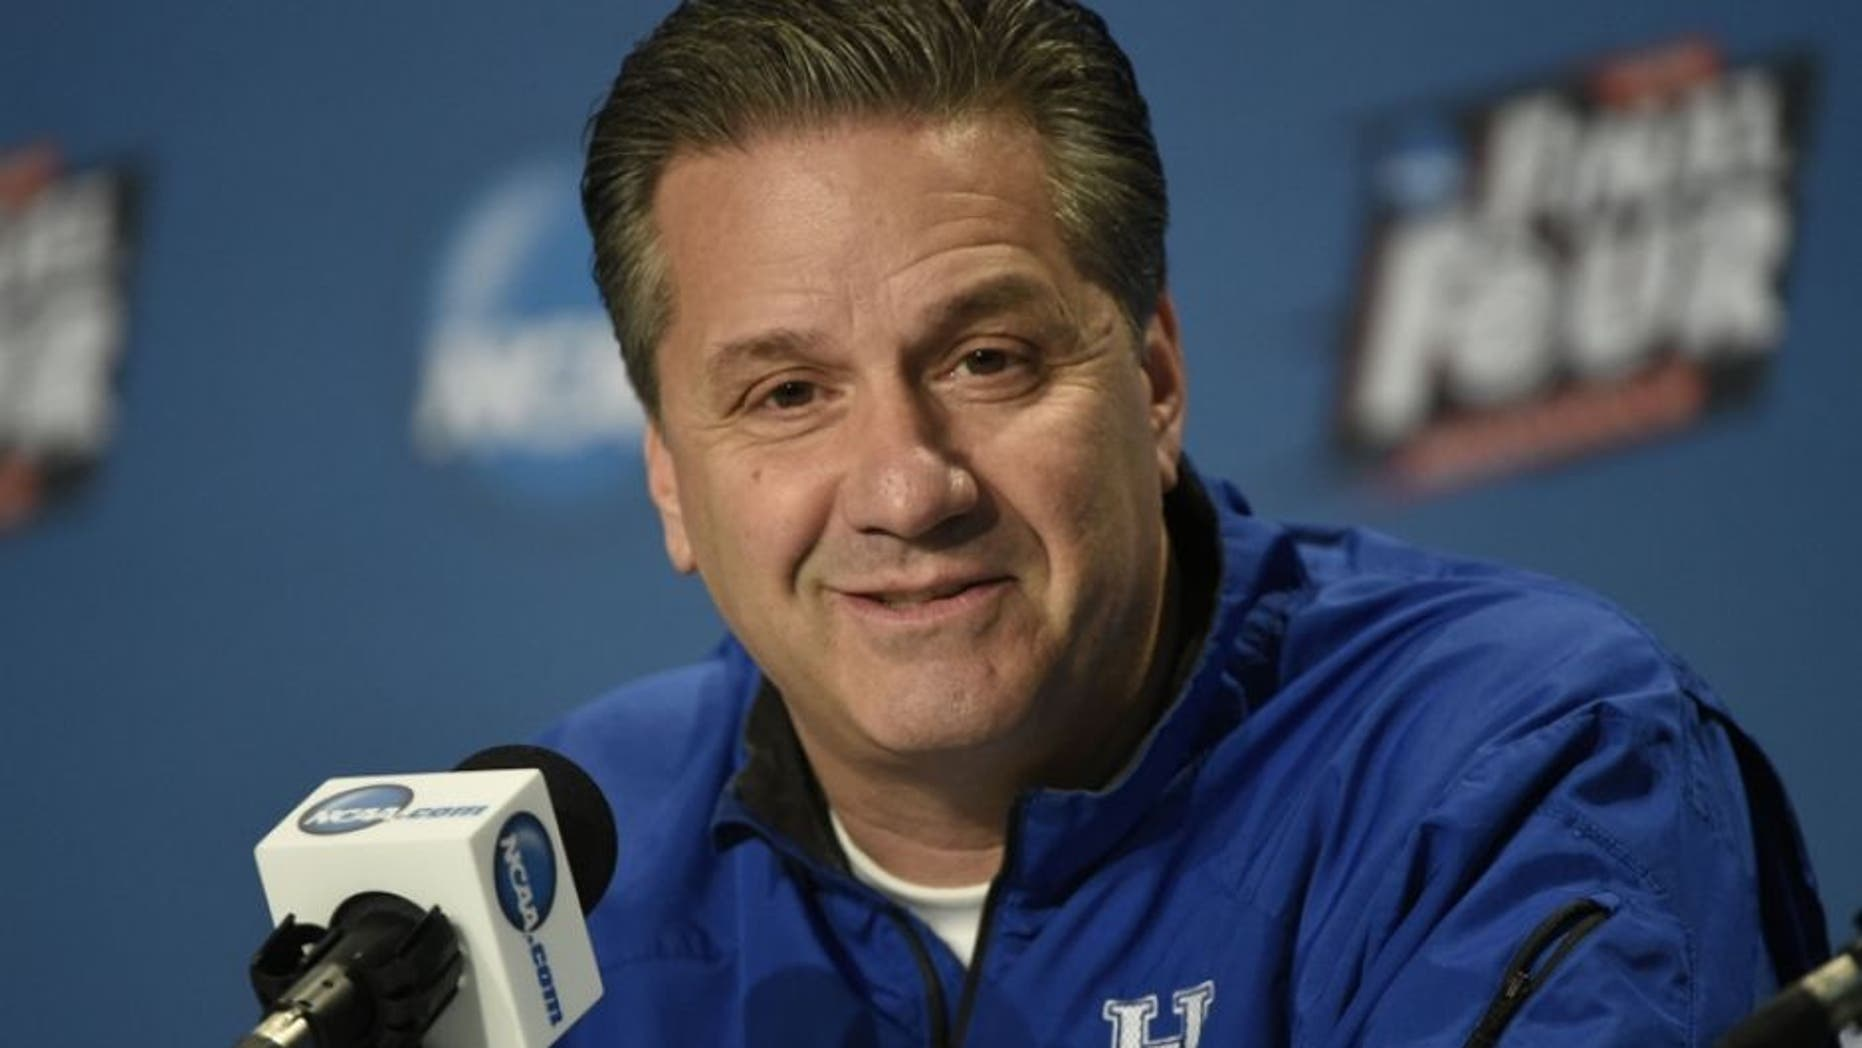 Apr 3, 2015; Indianapolis, IN, USA; Kentucky Wildcats head coach John Calipari speaks during a press conference for the 2015 NCAA Men's Division I Championship semi-final game at Lucas Oil Stadium. Mandatory Credit: Jamie Rhodes-USA TODAY Sports